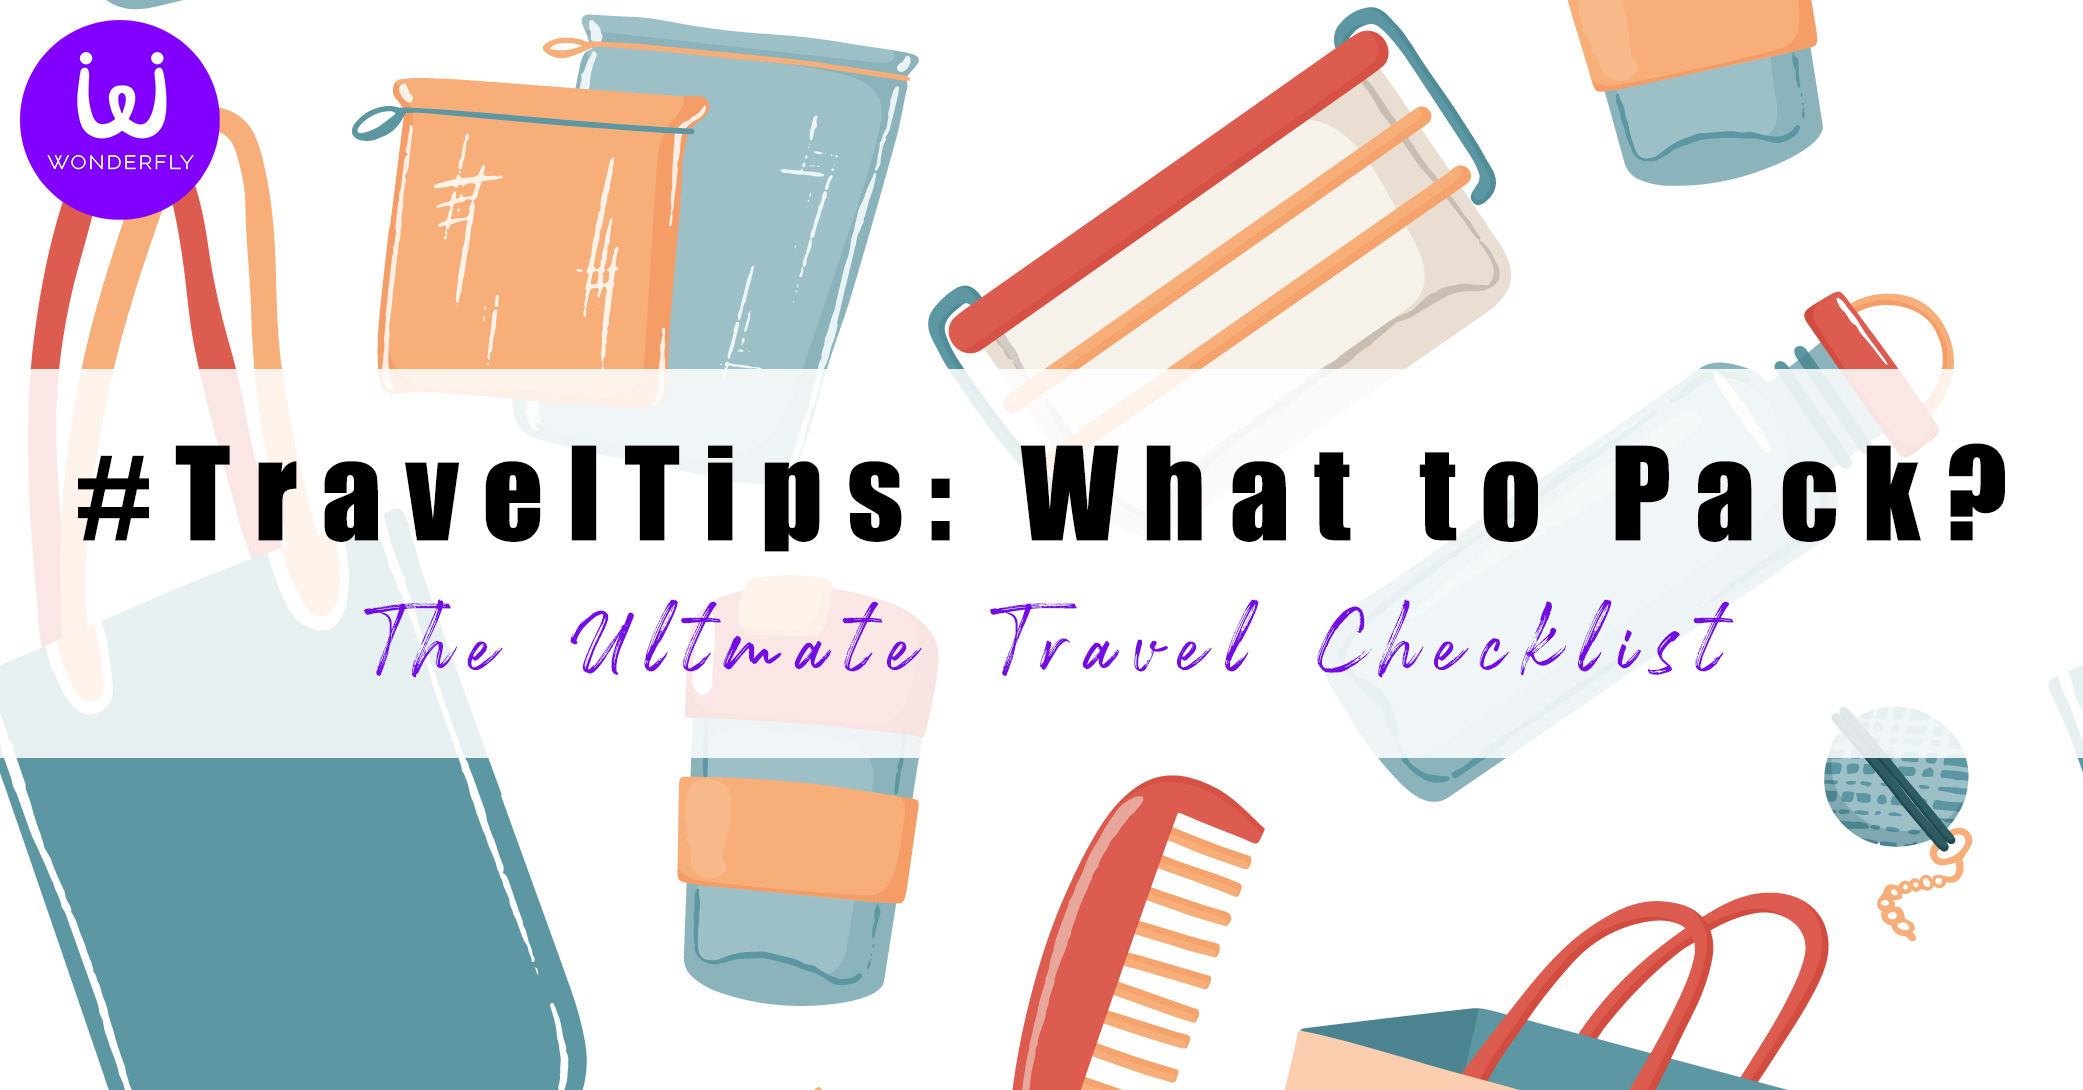 travel tips packing check list by wonderfly